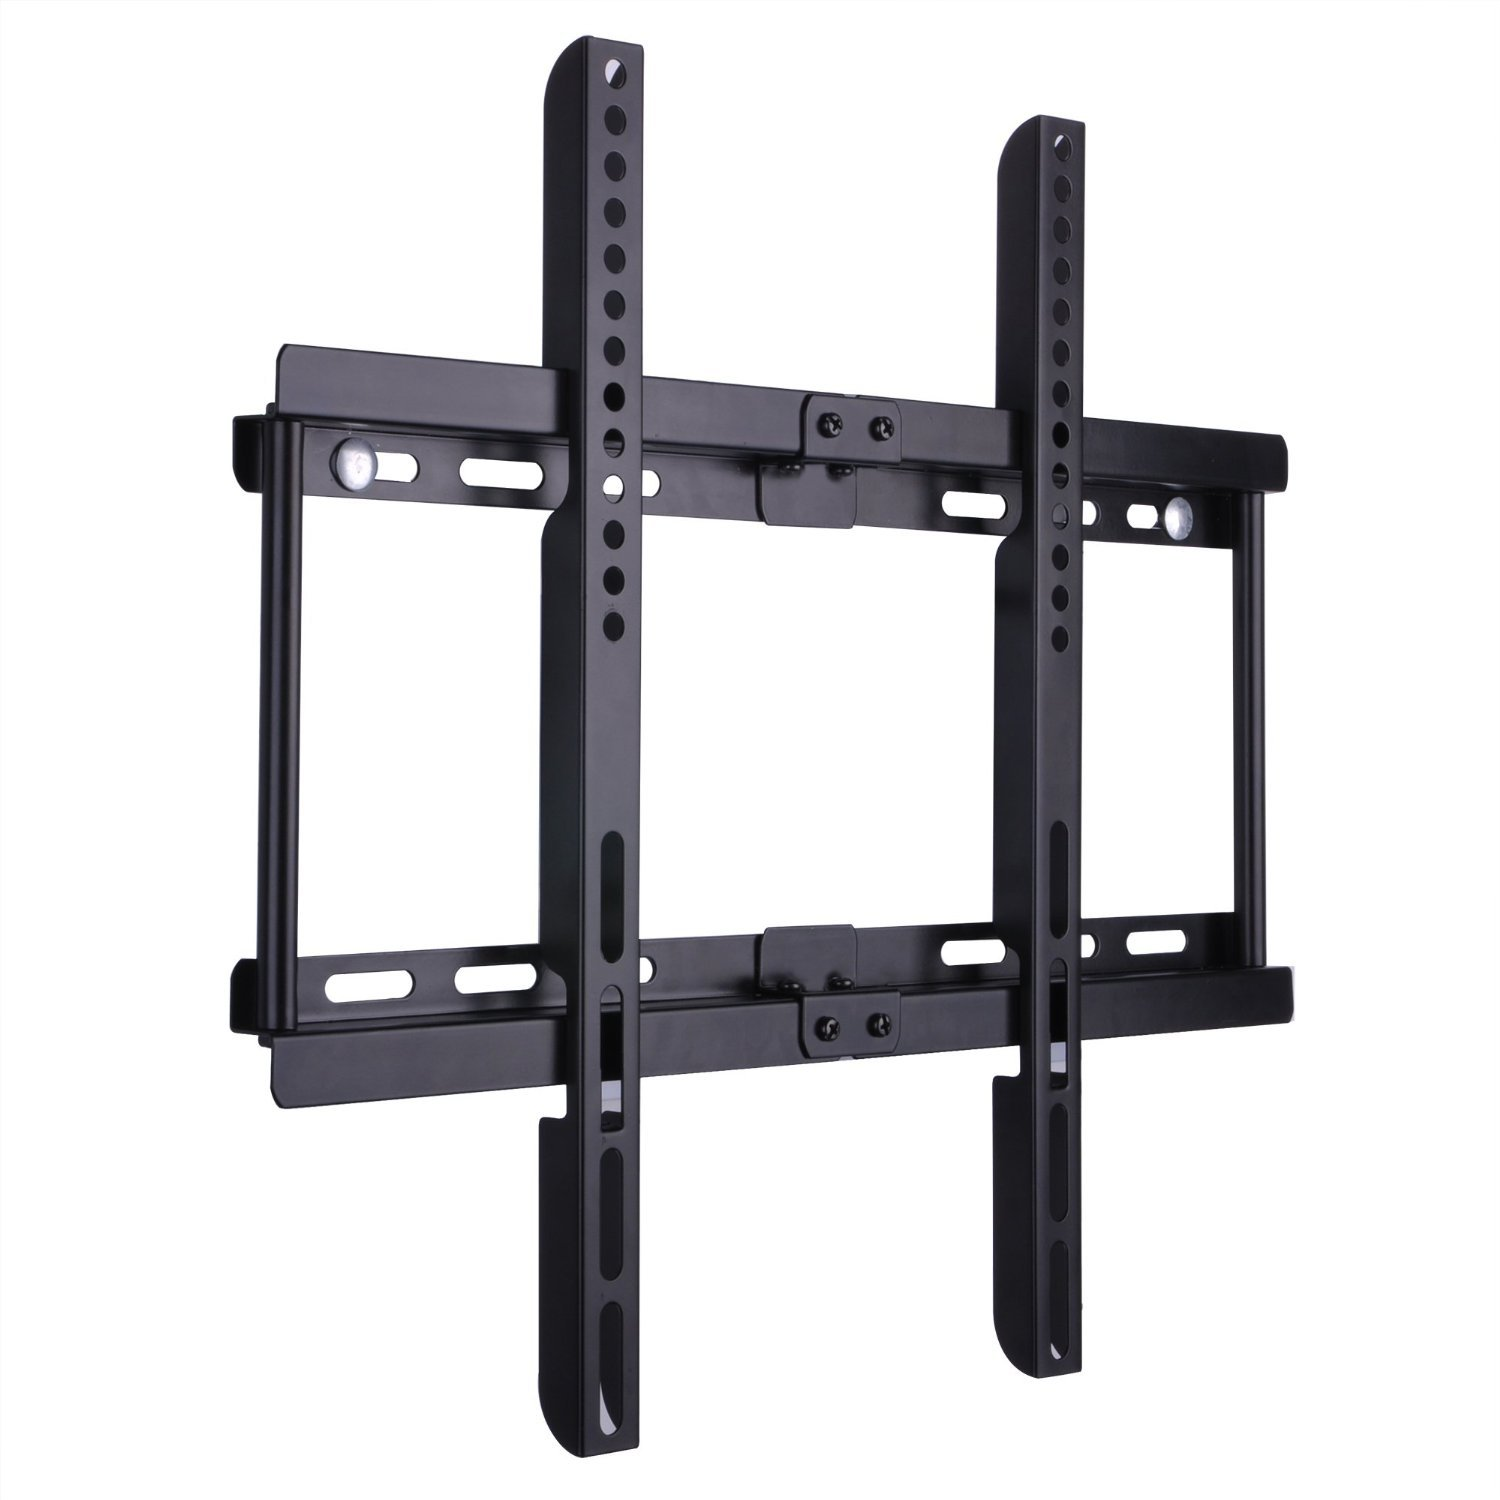 bps ultra slim tv wall bracket wall mount for 23 55 inch samsung lg sony sharp l ebay. Black Bedroom Furniture Sets. Home Design Ideas